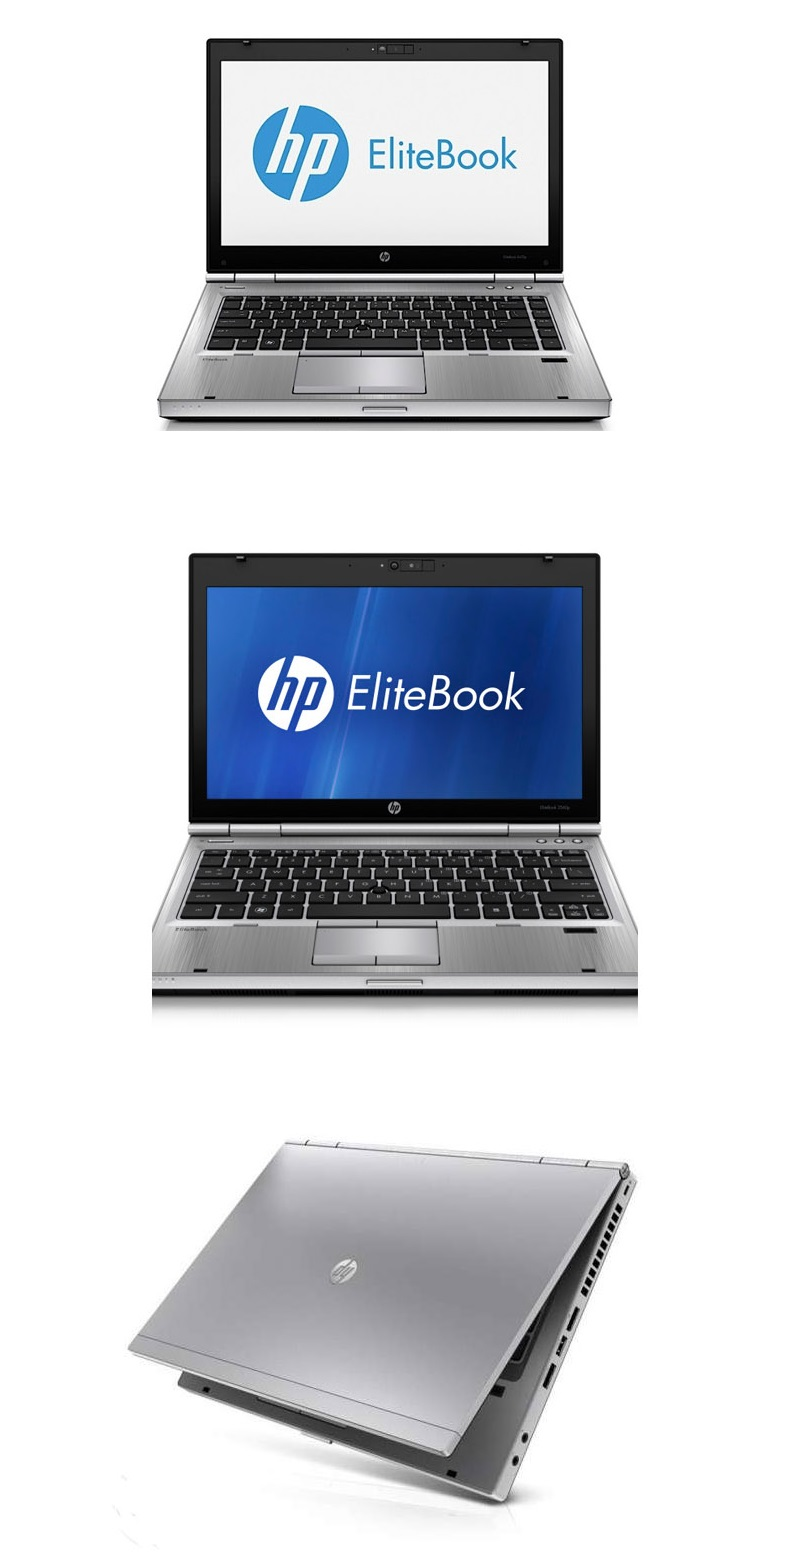 Buy Refurbished Hp Elitebook 2560p Laptop 125 Inch Intel Core I7 4gb Ram 250gb Hdd Windows 7 1 Month Warranty